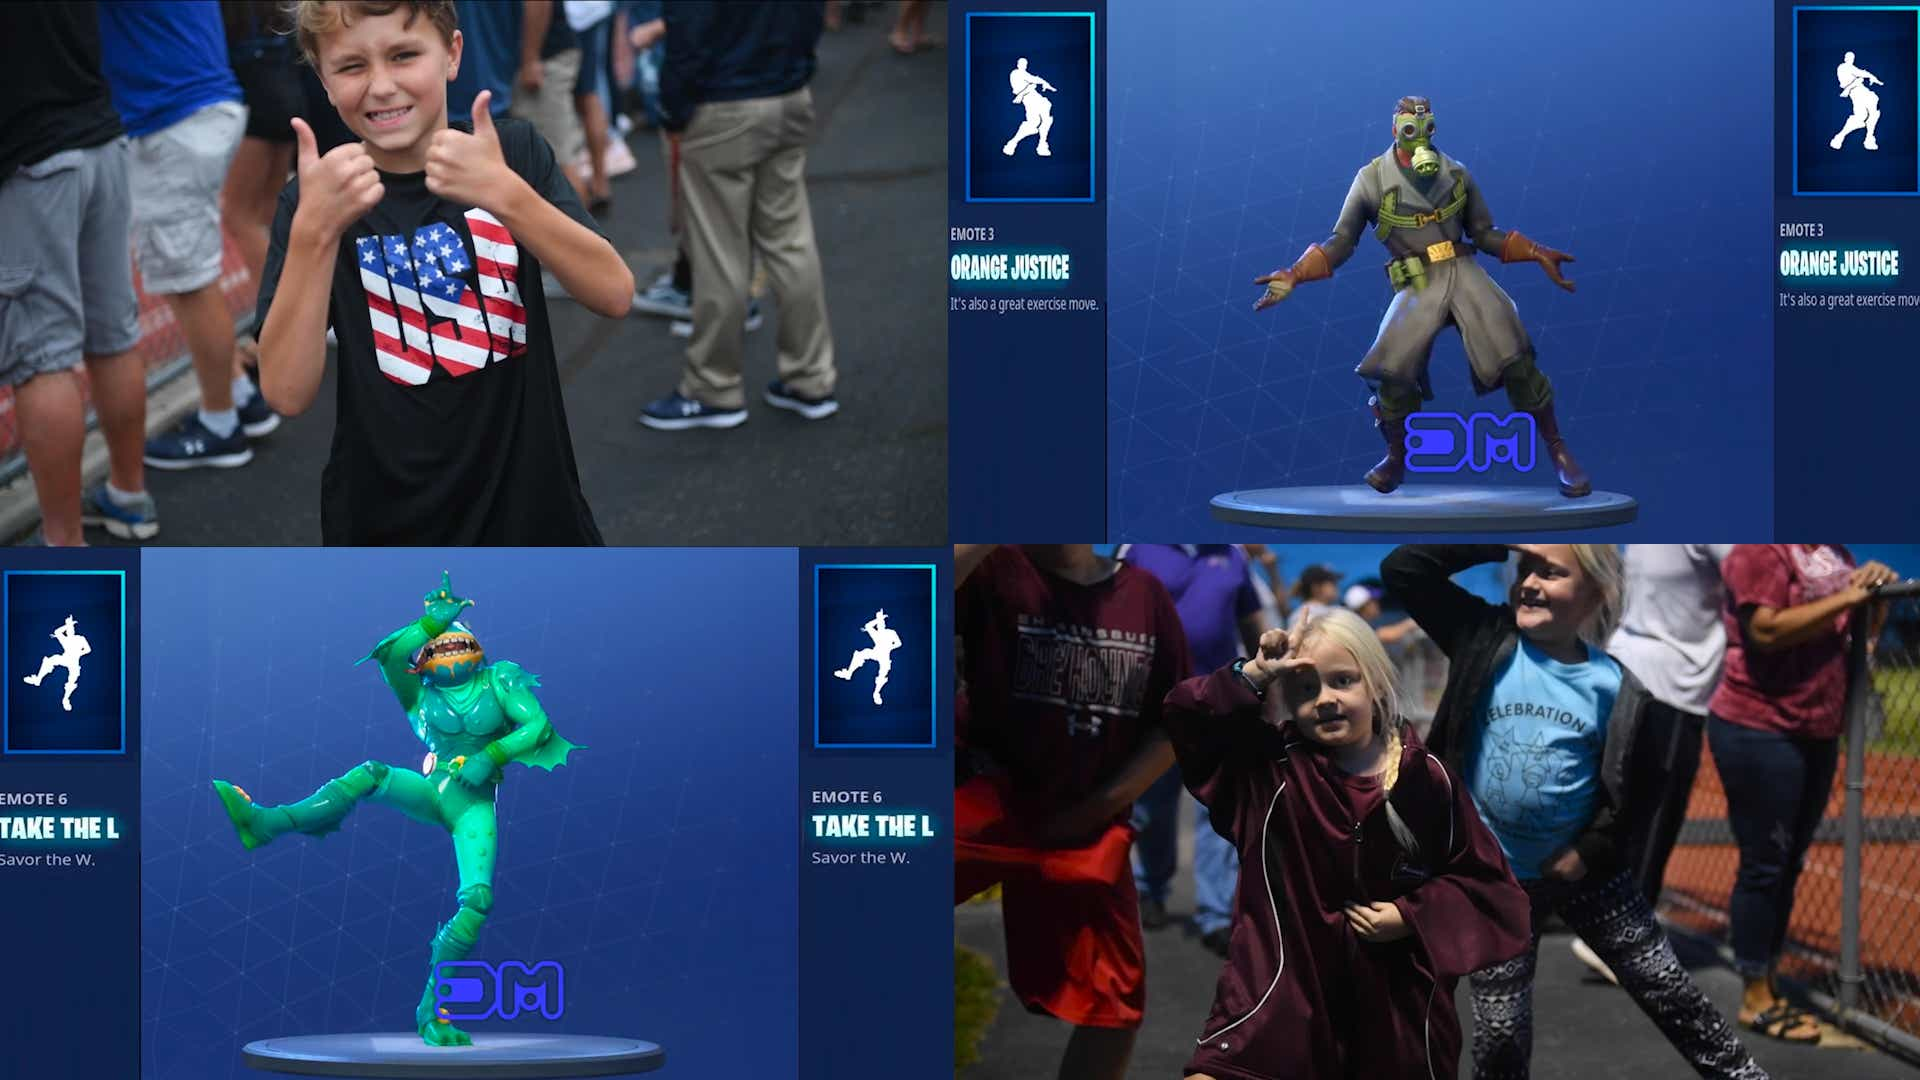 Fortnite Cape fortnite dances: see these kids try jubilation, hype and more